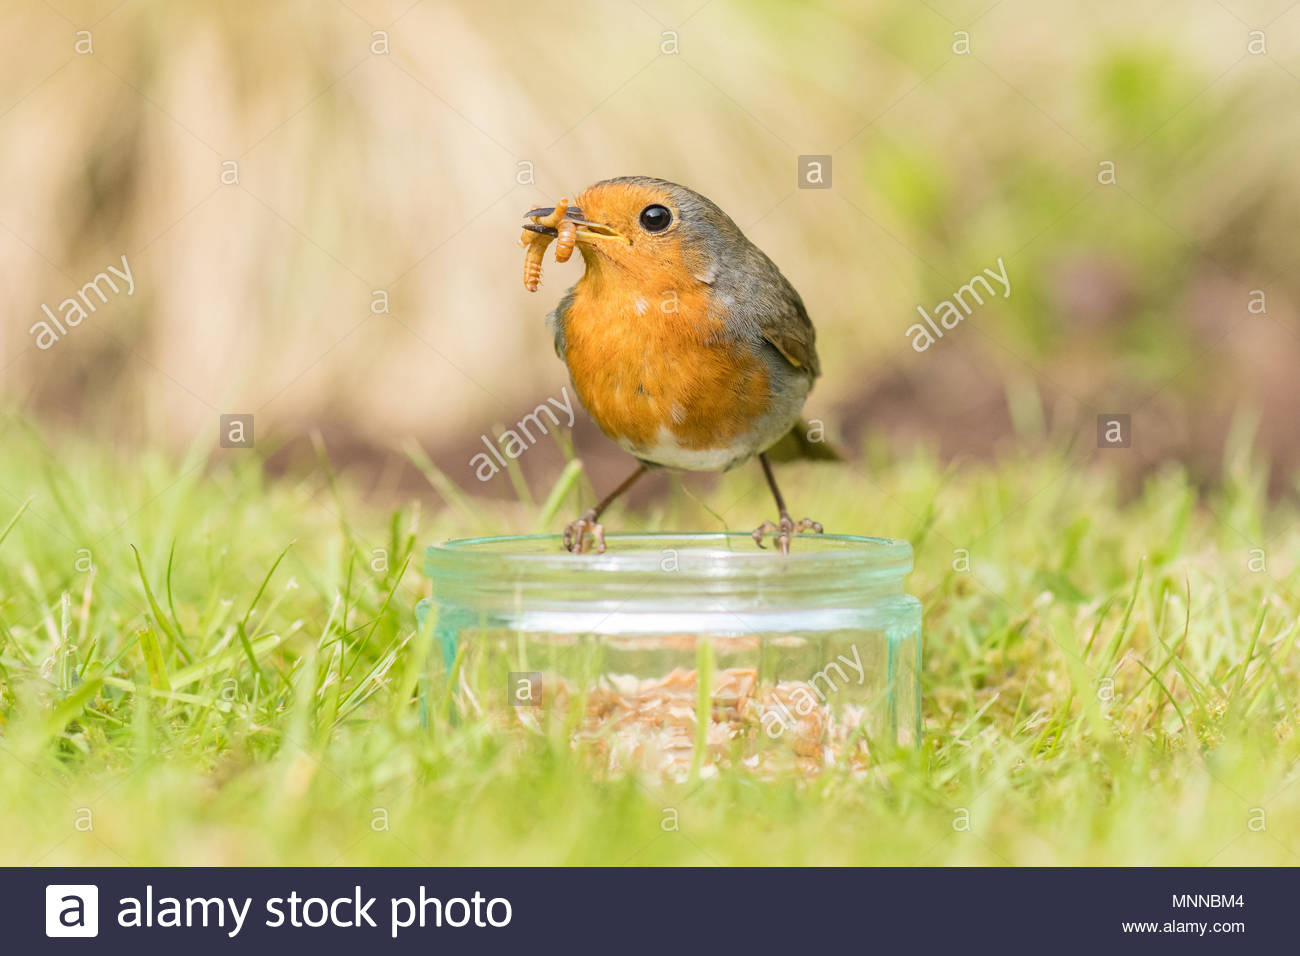 robin - erithacus rubecula - collecting mealworms from a dish - Stock Image